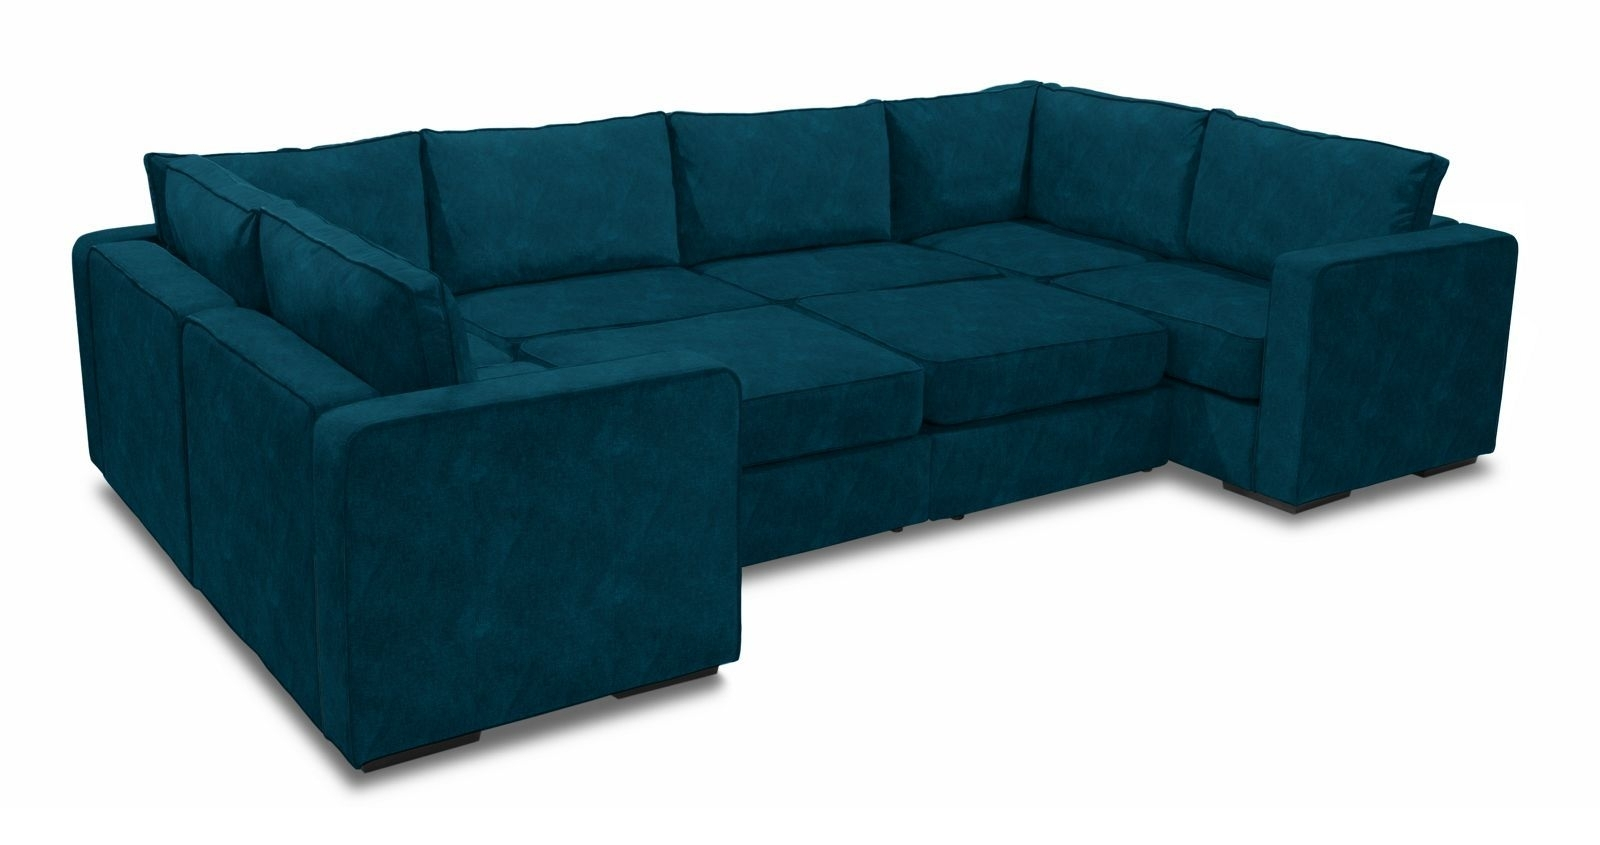 8 Seats + 10 Sides | Living/media Room | Pinterest | Couch, Home Regarding London Optical Reversible Sofa Chaise Sectionals (Image 1 of 25)